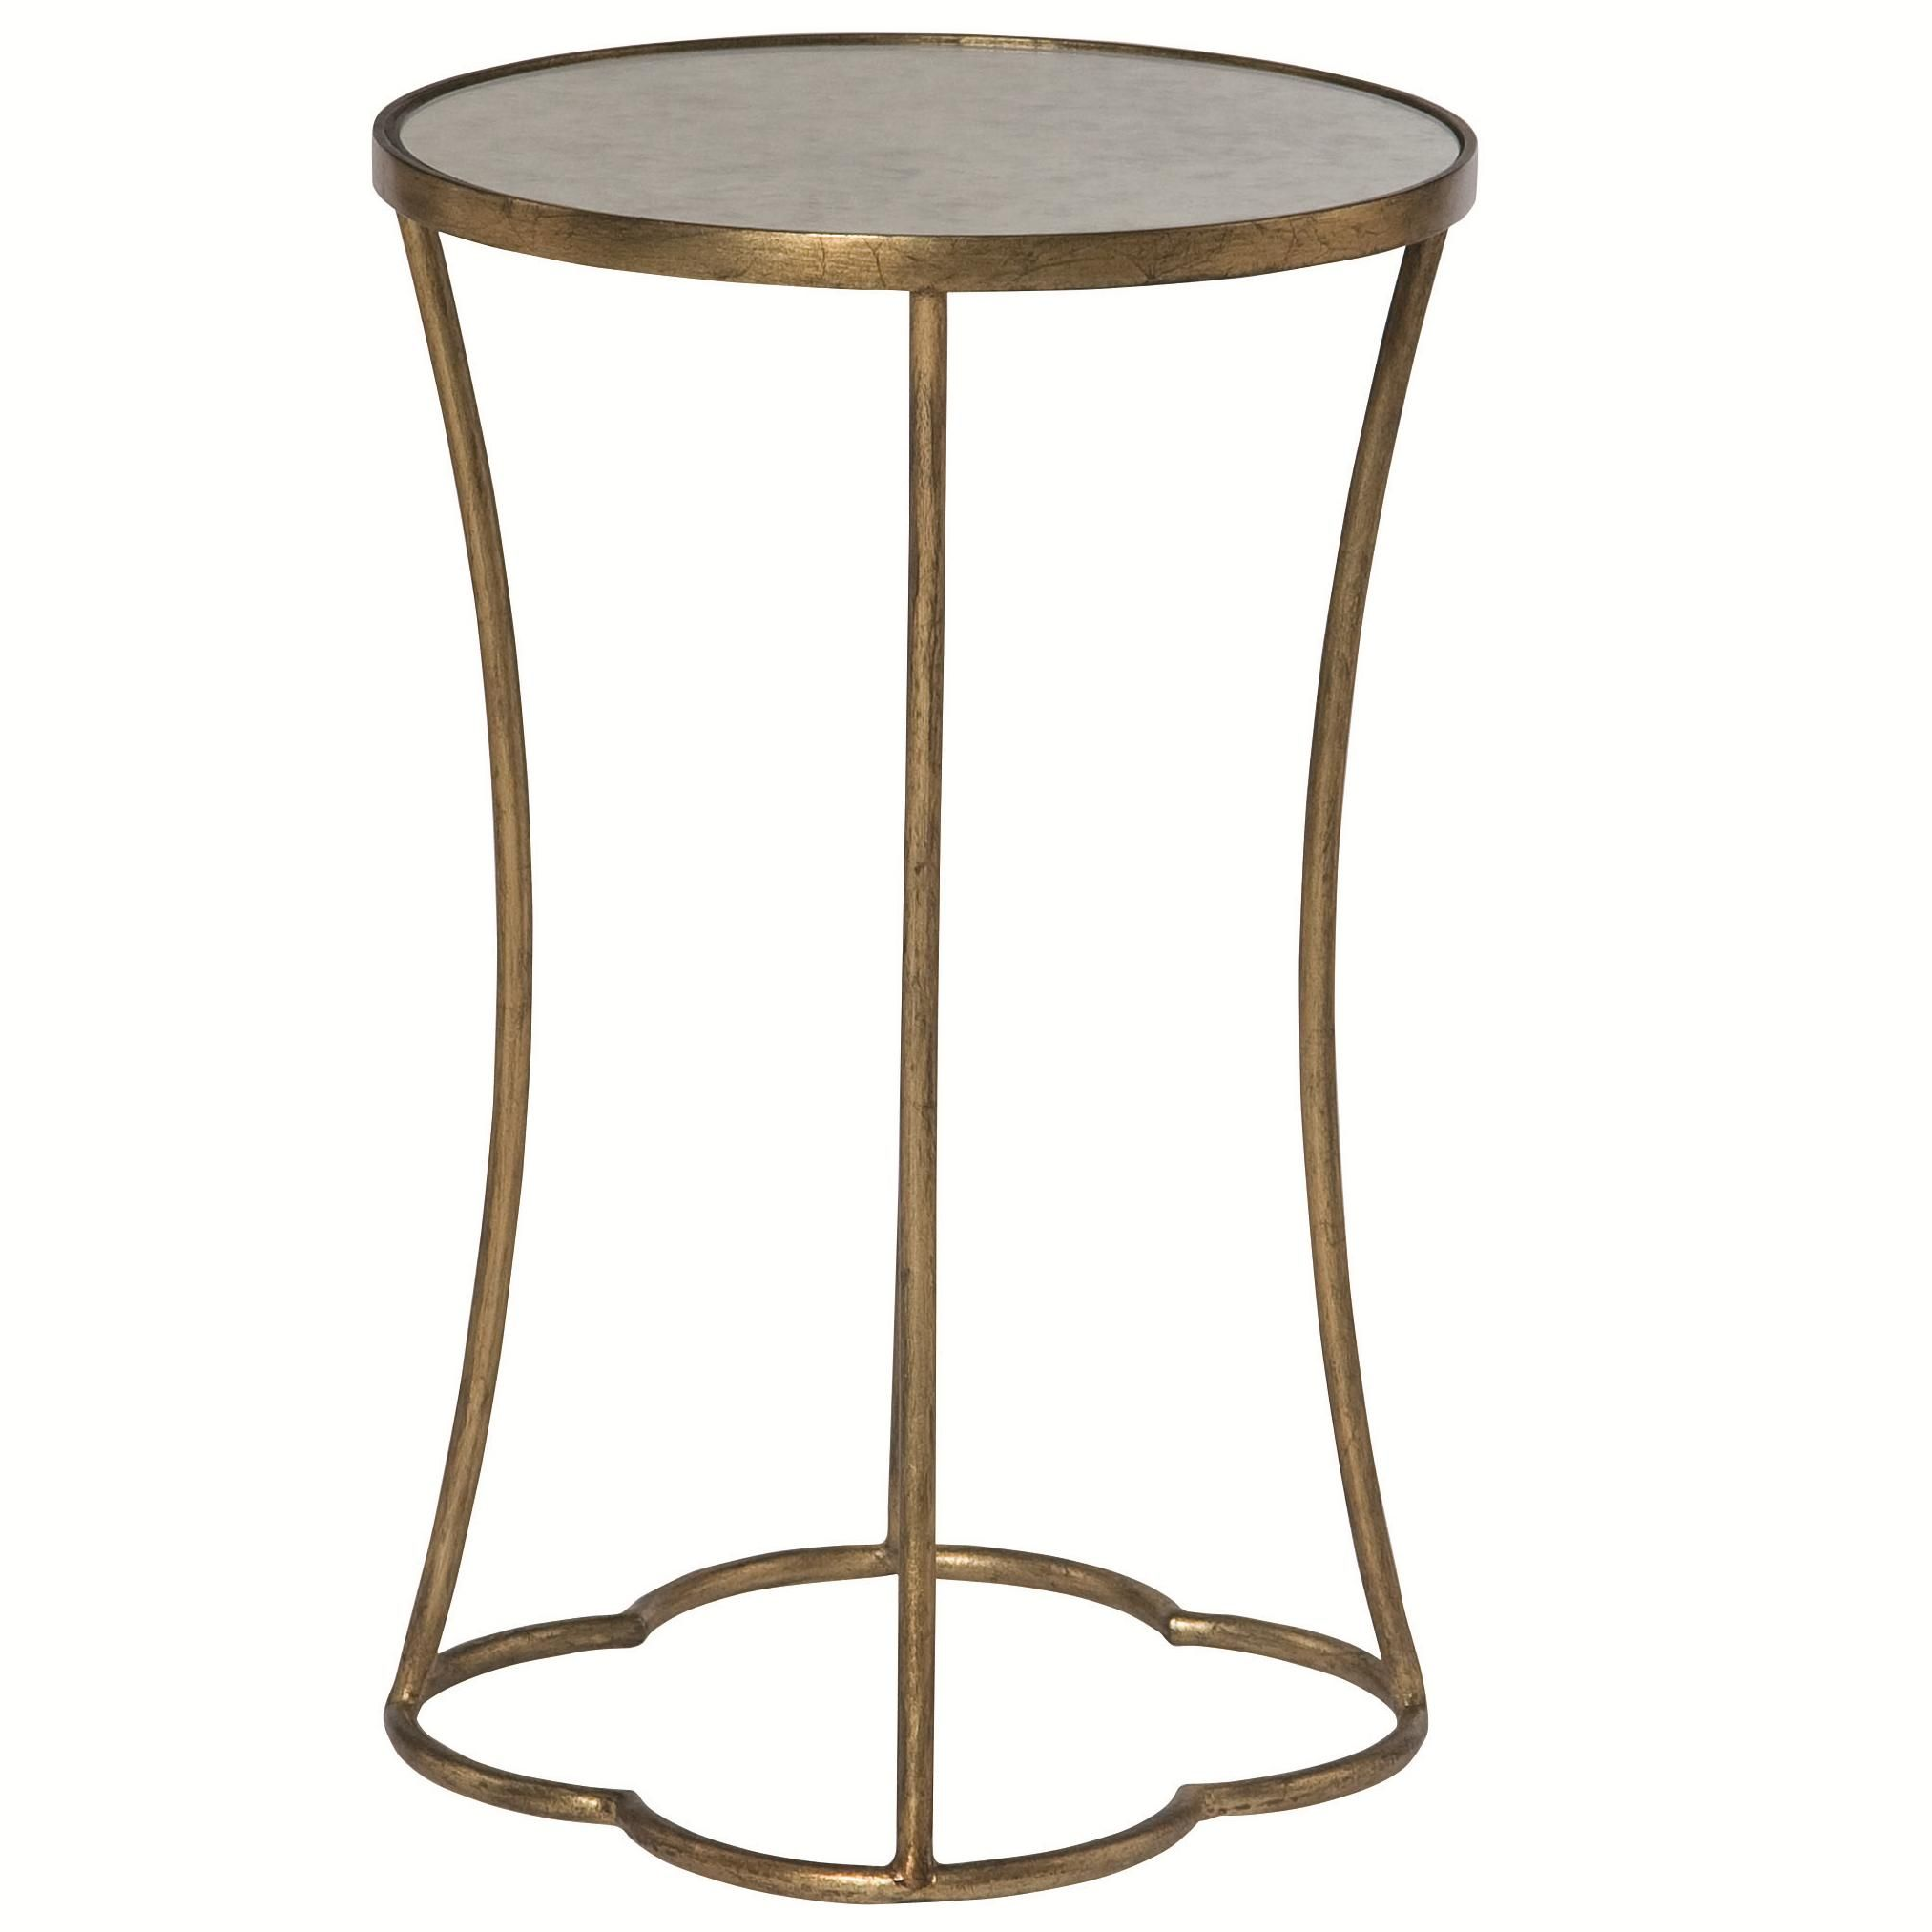 Interiors   Accents Kylie Round Accent Table With Antique Mirrored Top   Furniture  Barn U0026 Manor